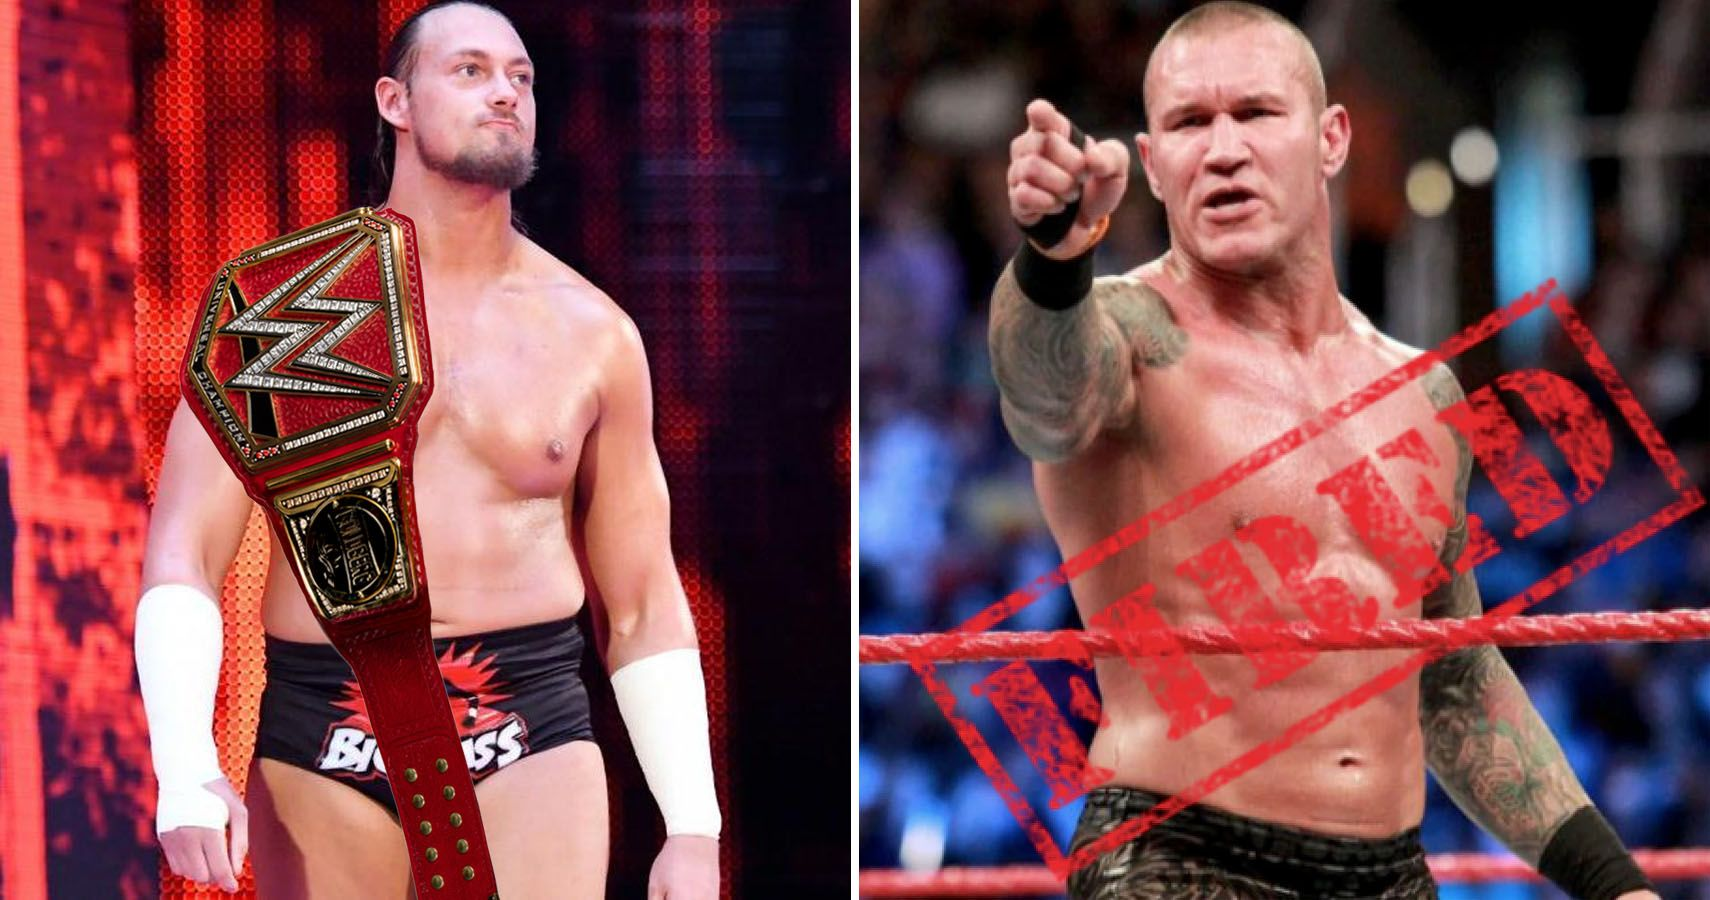 Wwe Best Wrestlers 2020 Wrestlers That'll Be On Top Of The WWE By 2020 | TheSportster